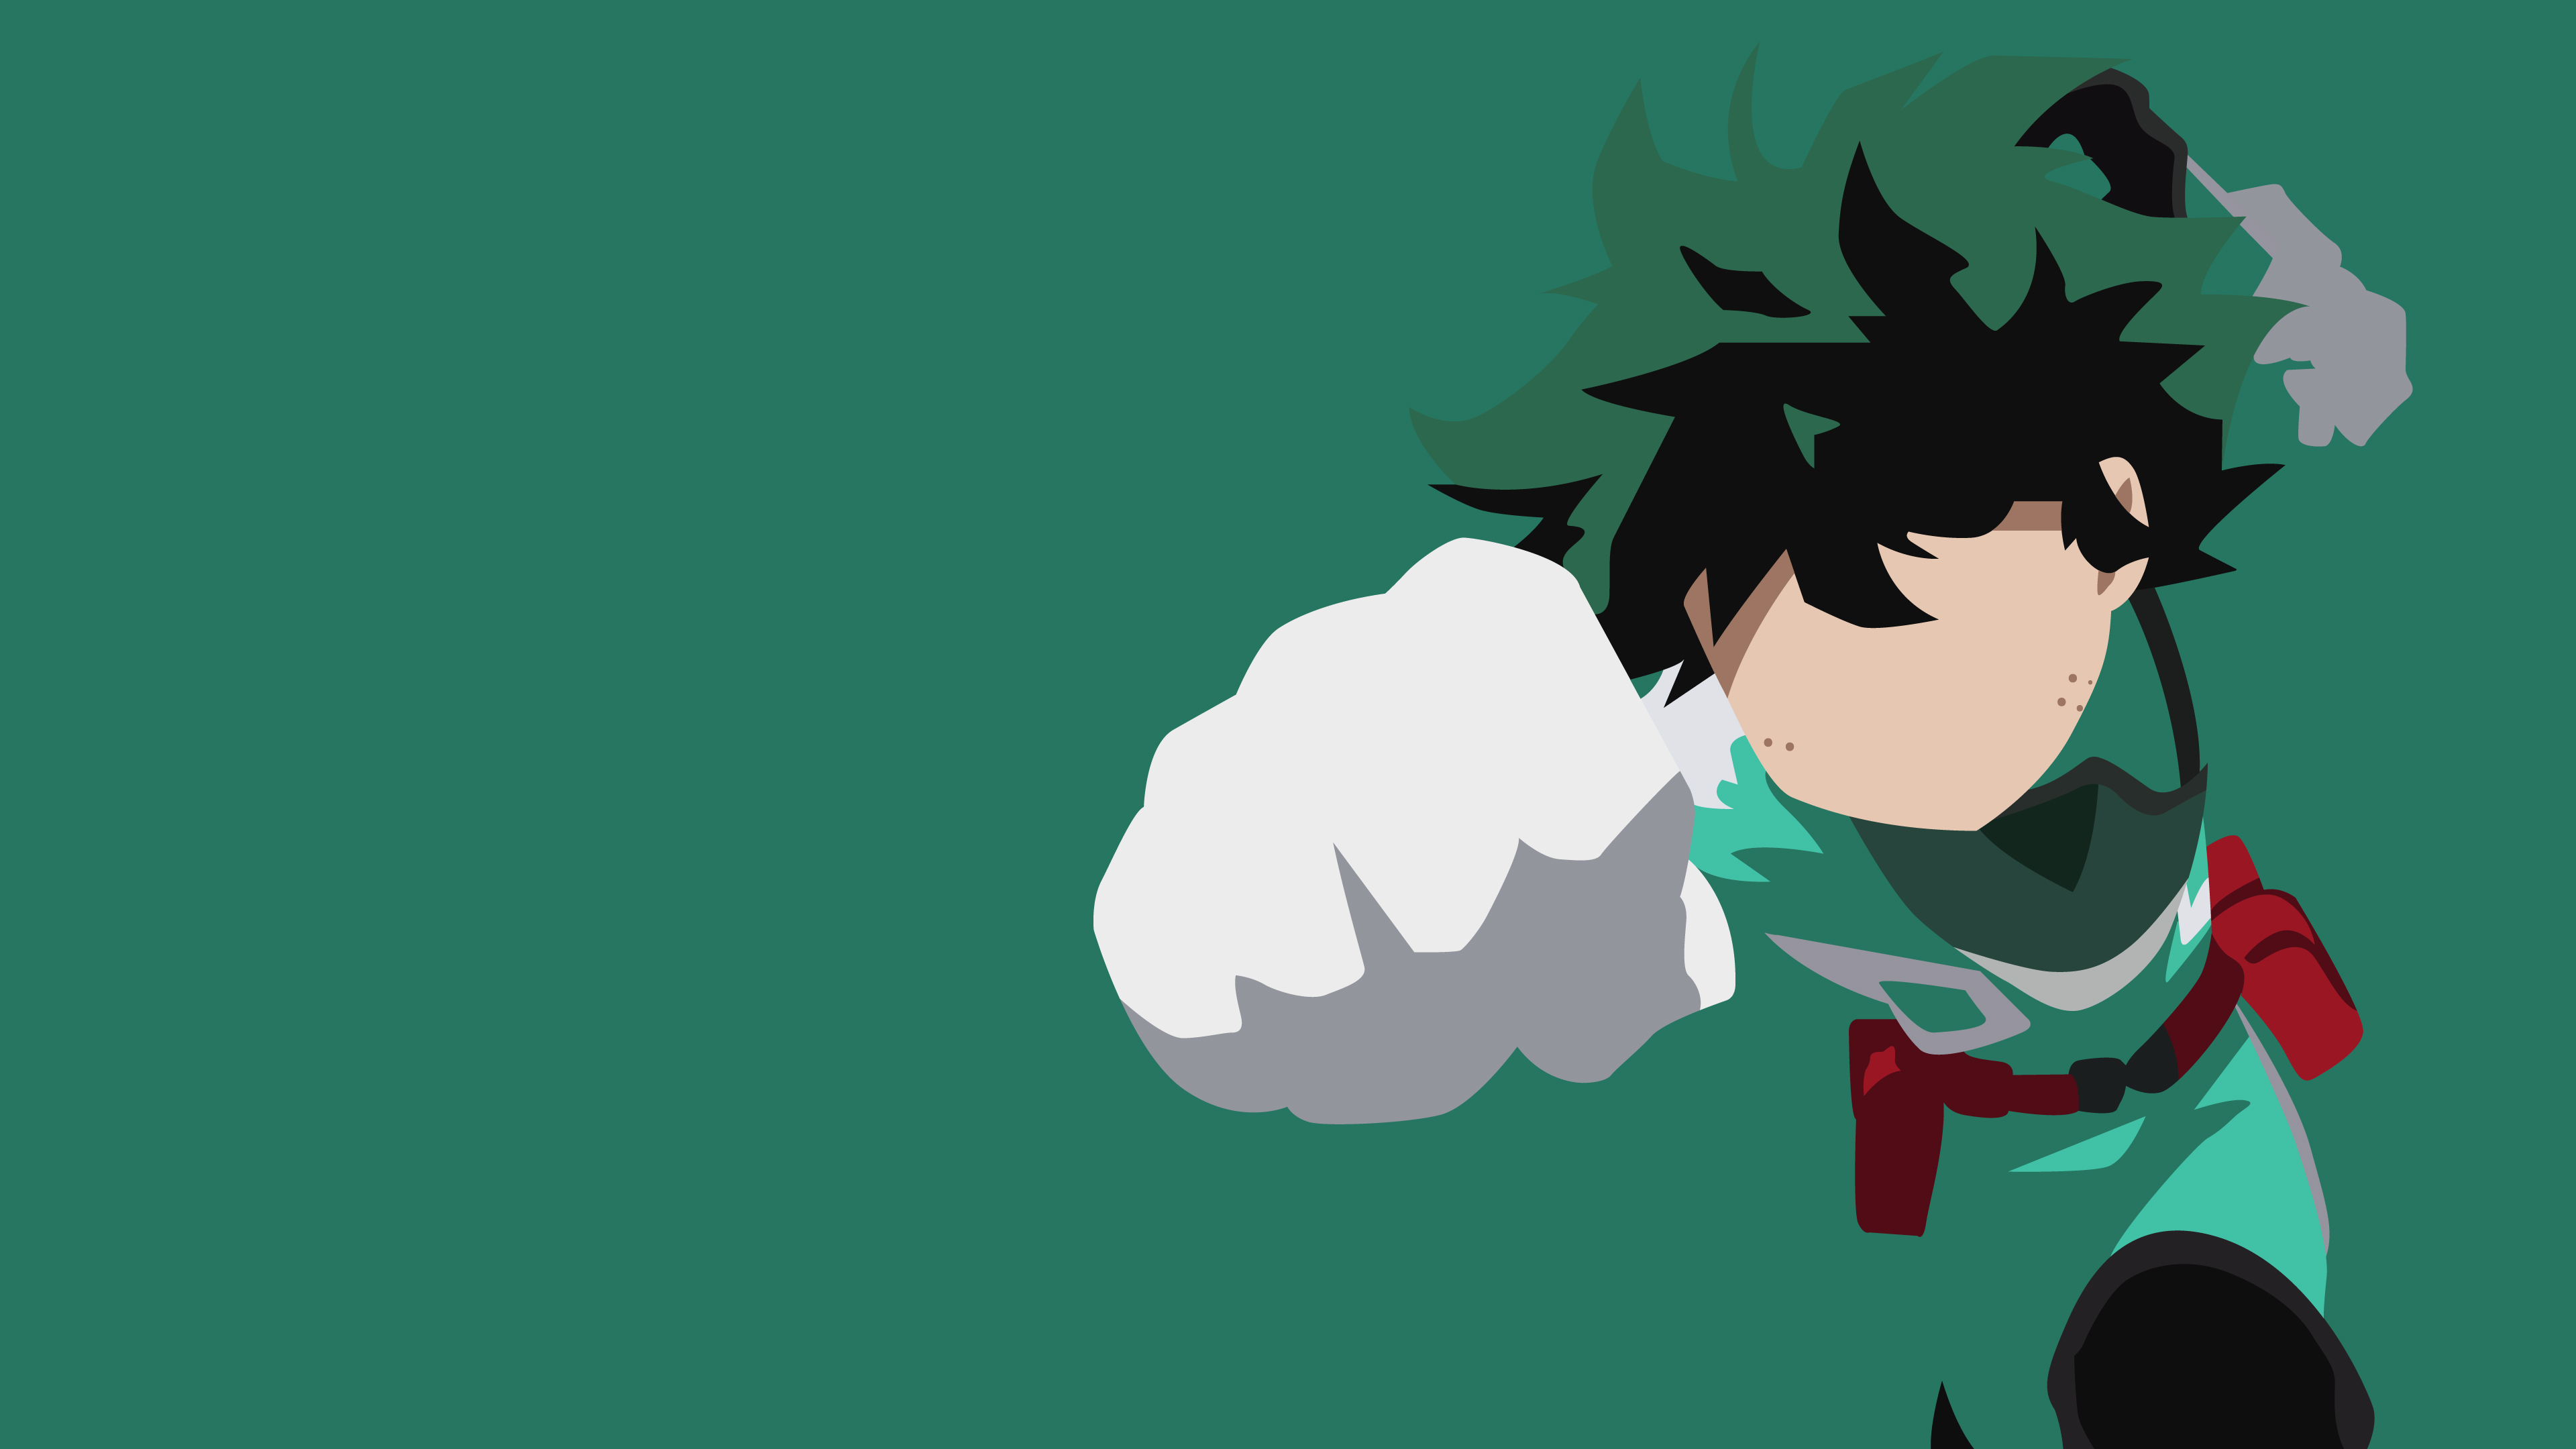 My Hero Academia 4k Ultra HD Wallpaper  Background Image  3840x2160  ID:809140  Wallpaper Abyss